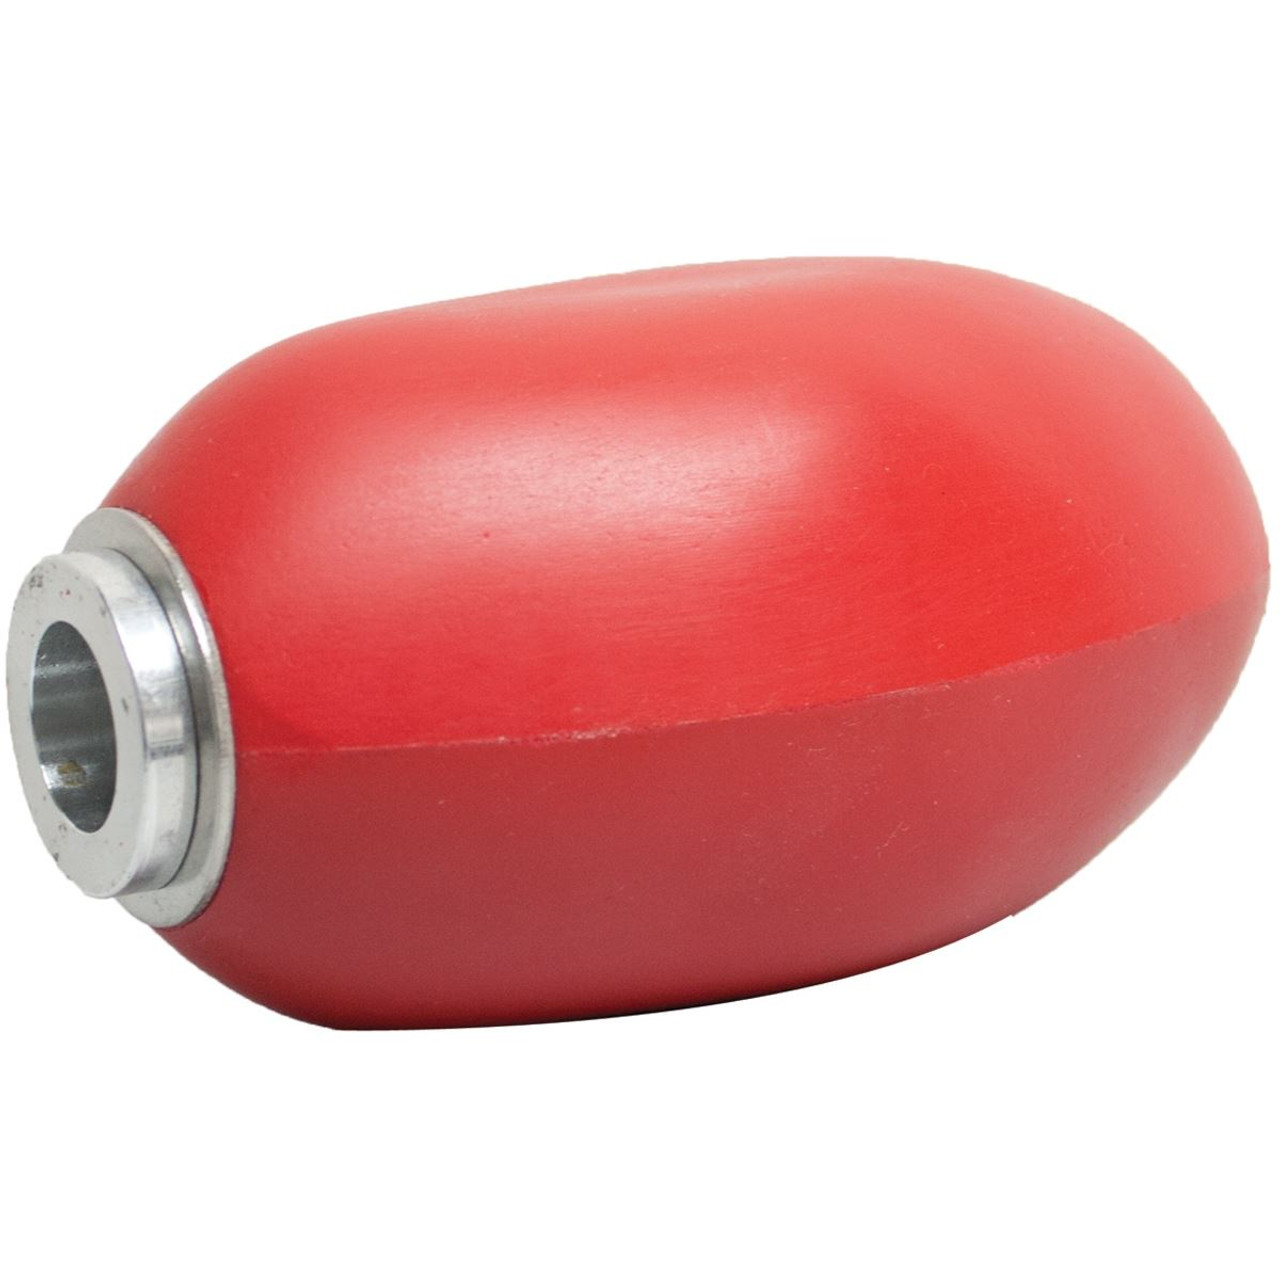 Bisley Red Plastic Dummy for Launcher